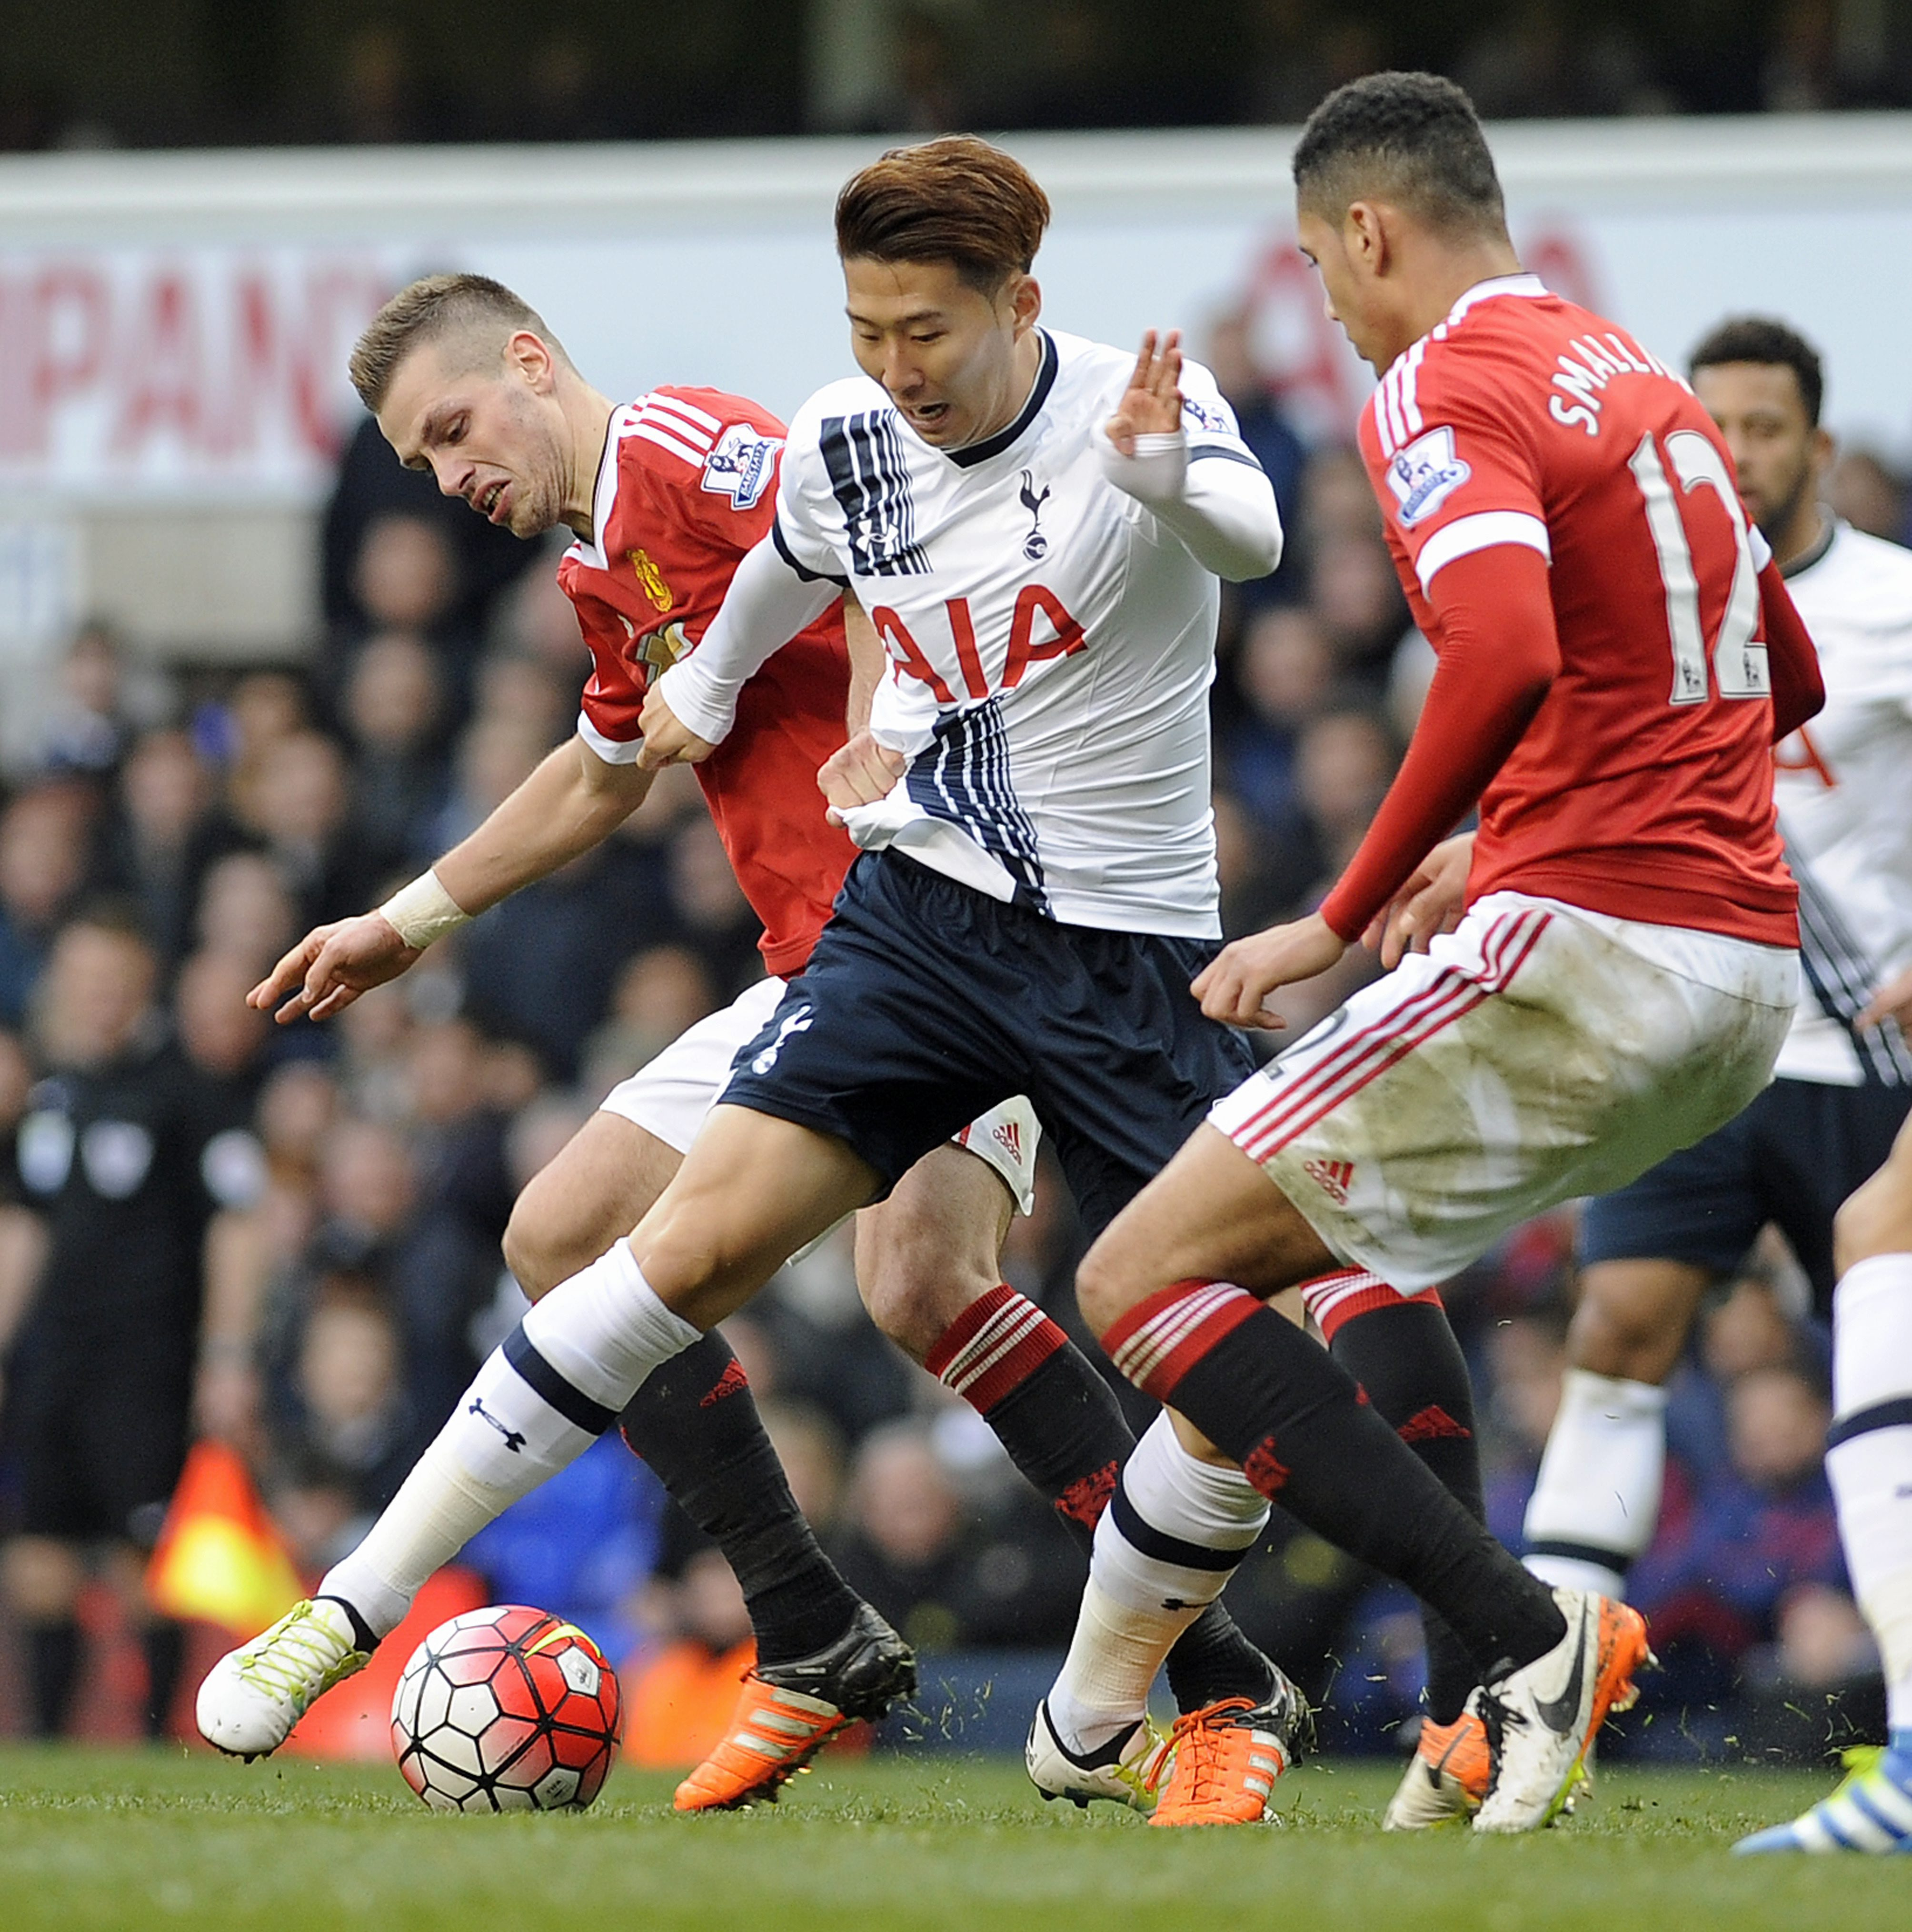 Tottenham Hotspur's Heung-Min Son takes on Manchester United's Chris Smalling (R) during the English Premier League soccer match between Tottenham Hotspur and Manchester United at White Hart Lane in London, Britain, 10 April 2016. EPA/GERRY PENNY